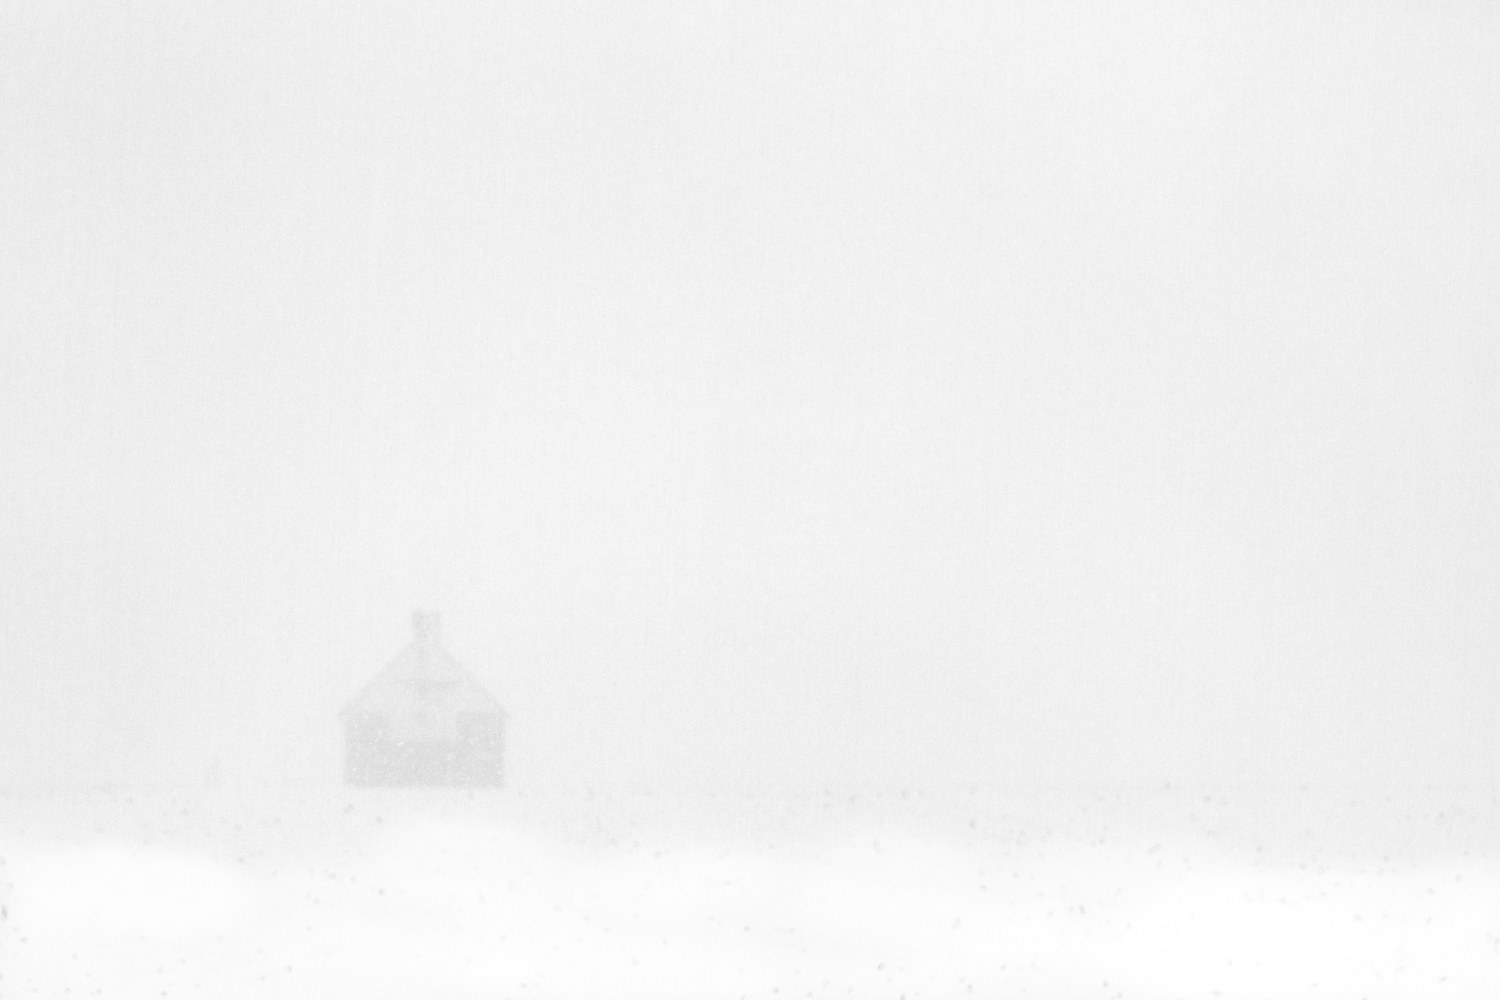 Cropsy Shed White-Out 2-2015_MG_9472-Edit by Ted Diamond